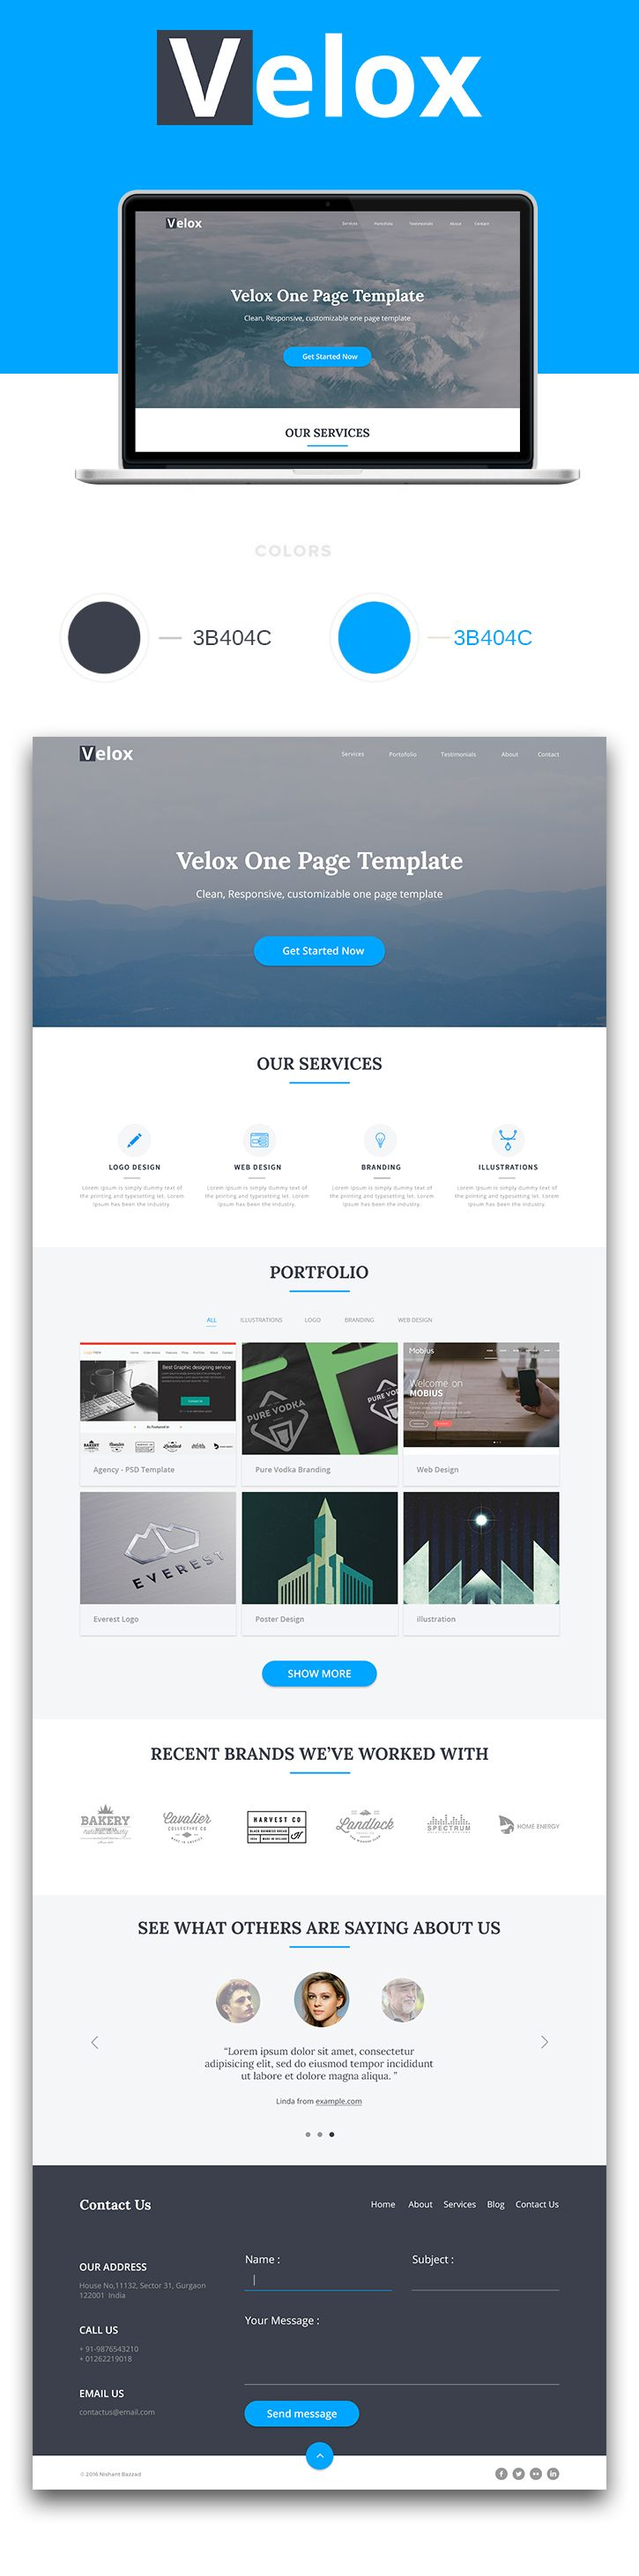 56 best Admin/ Dashboard images on Pinterest | Psd templates ...